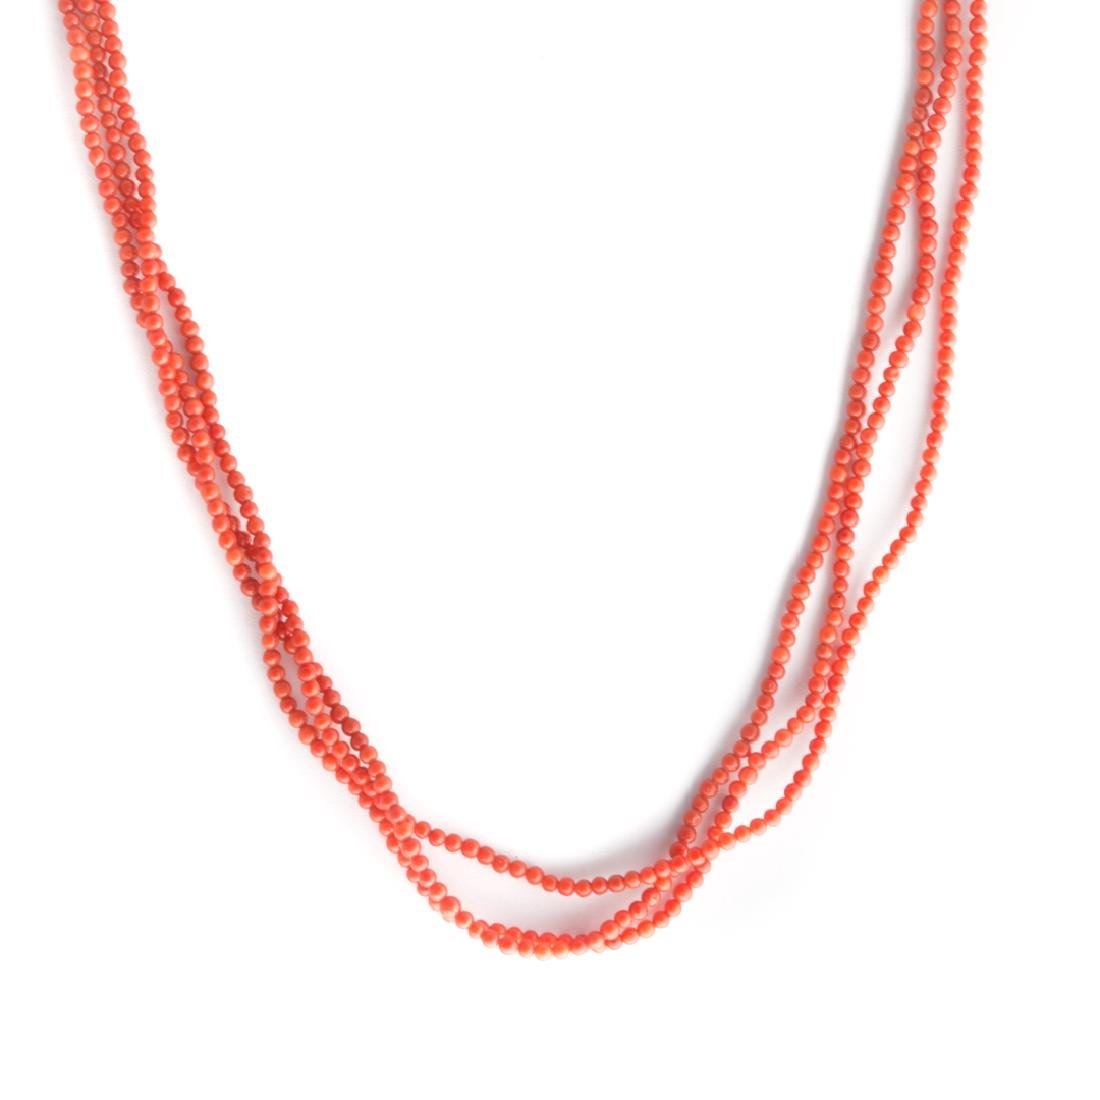 Three Strands of Very Fine Coral Beads